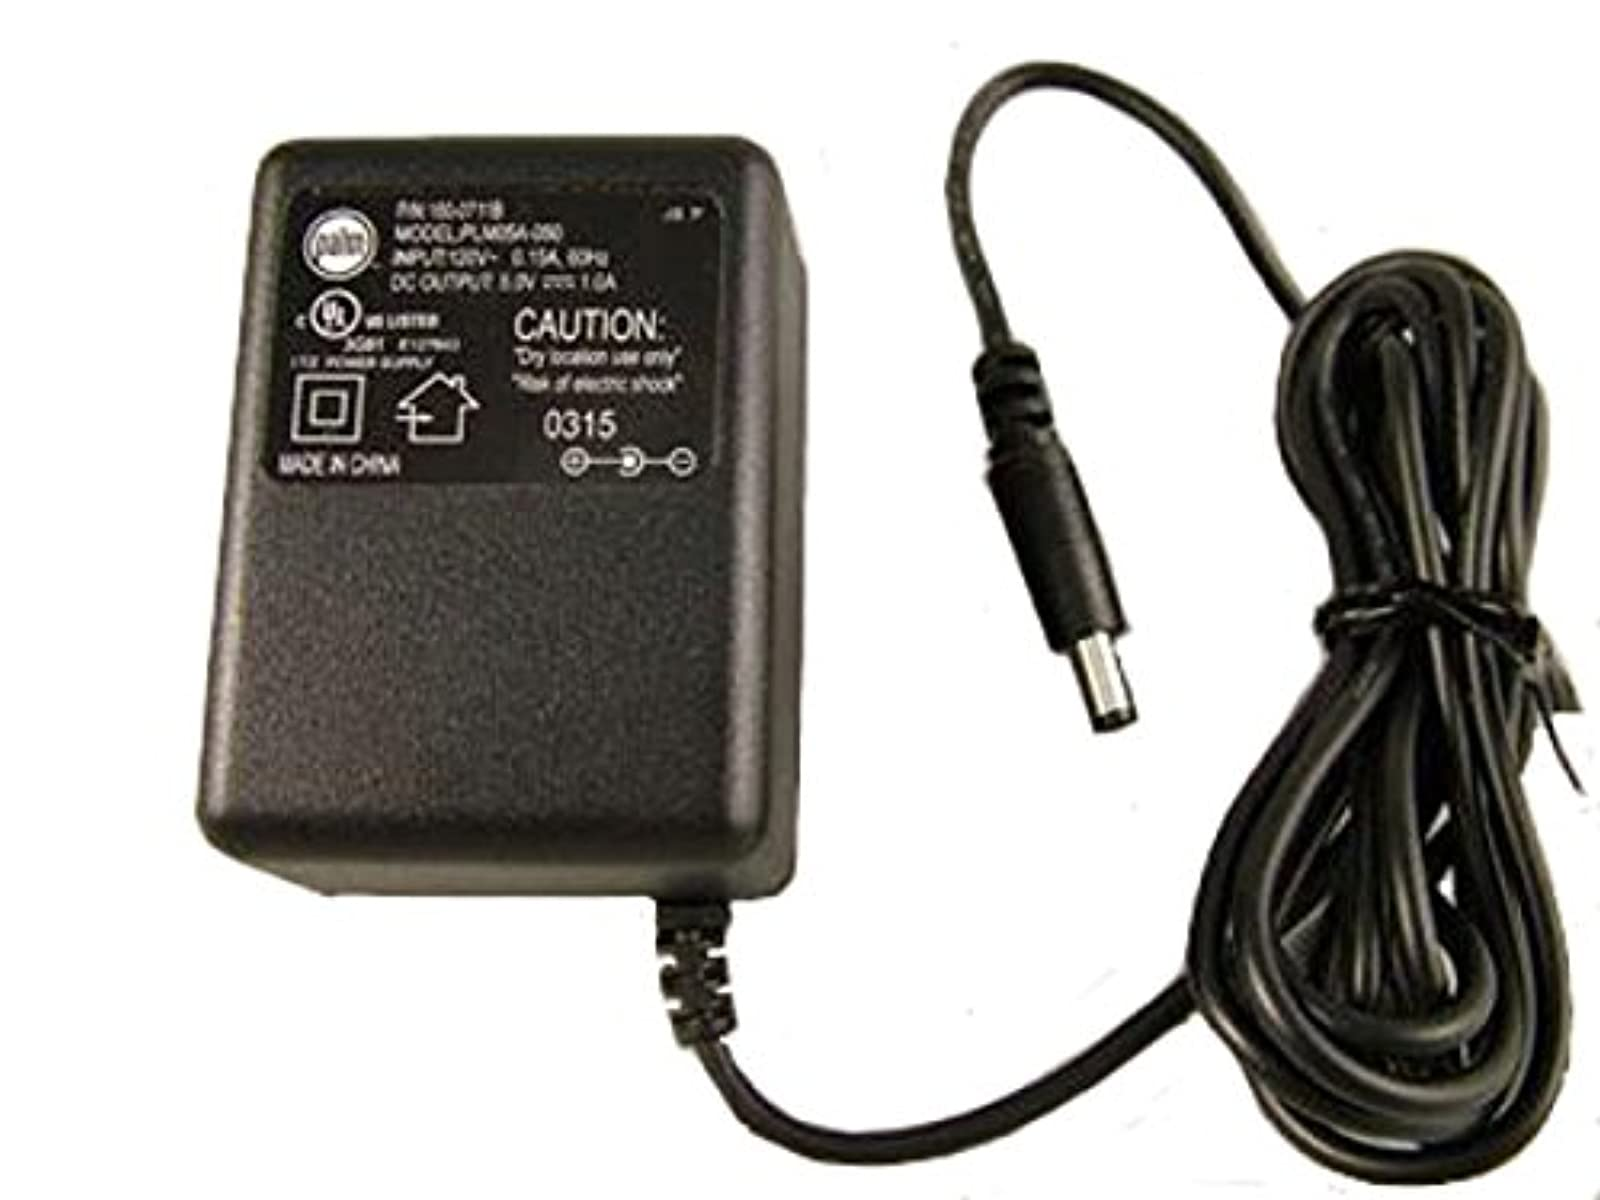 AC Adapter For Palm M130 And M500 Model: PLM05A-050 Pn: 180-0711B Wall Power Cha